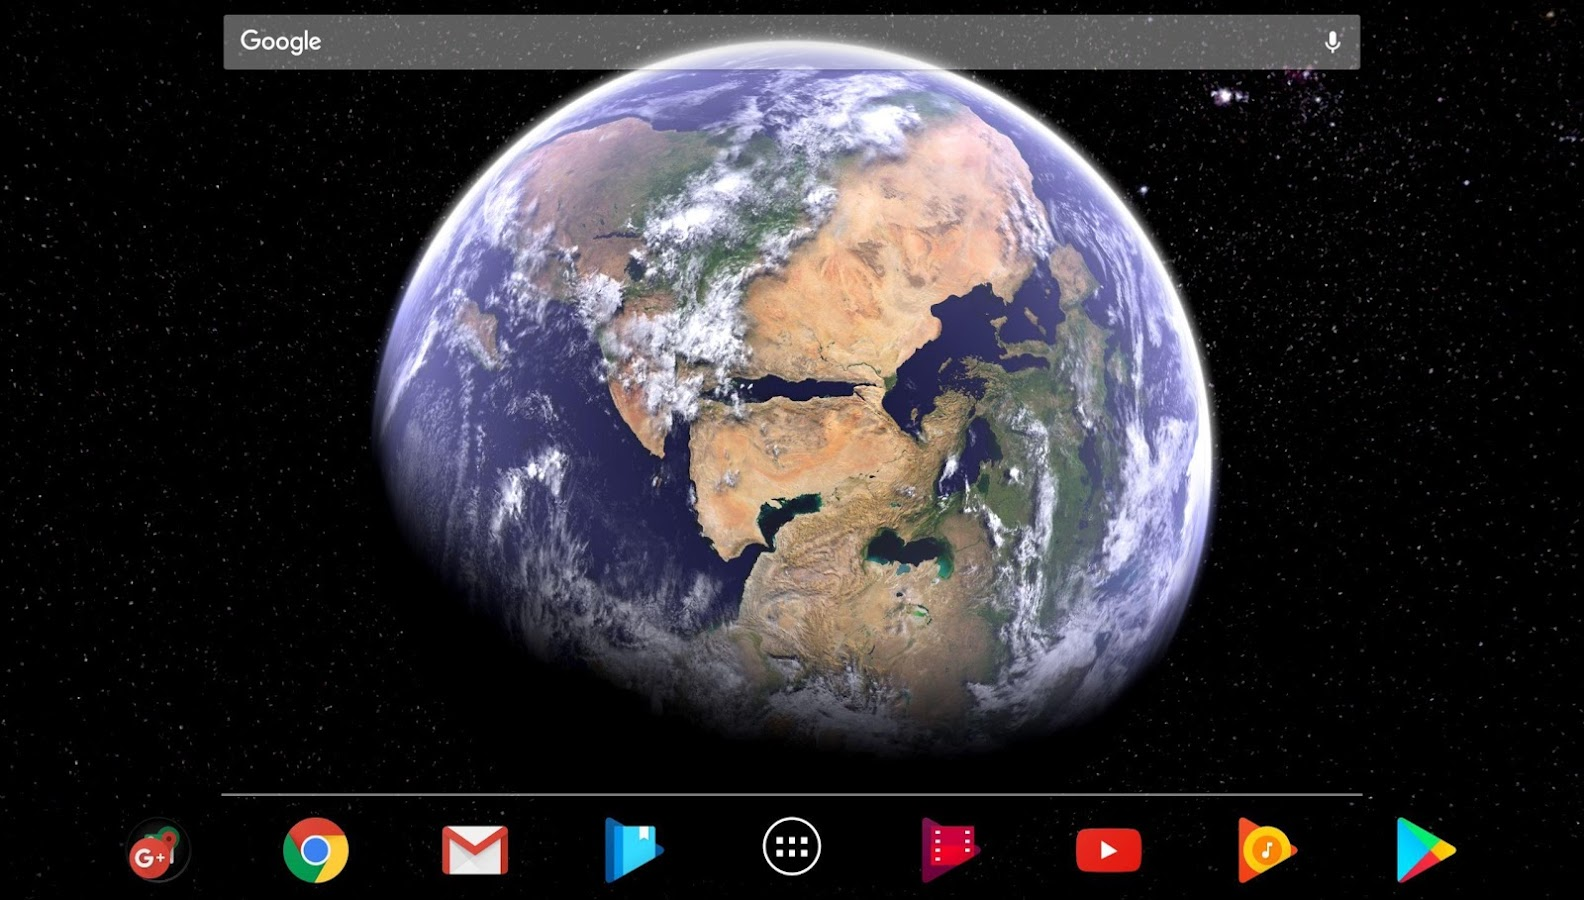 Sh sh show me my house on google earth - Earth Moon In Hd Gyro 3d Parallax Live Wallpaper Screenshot